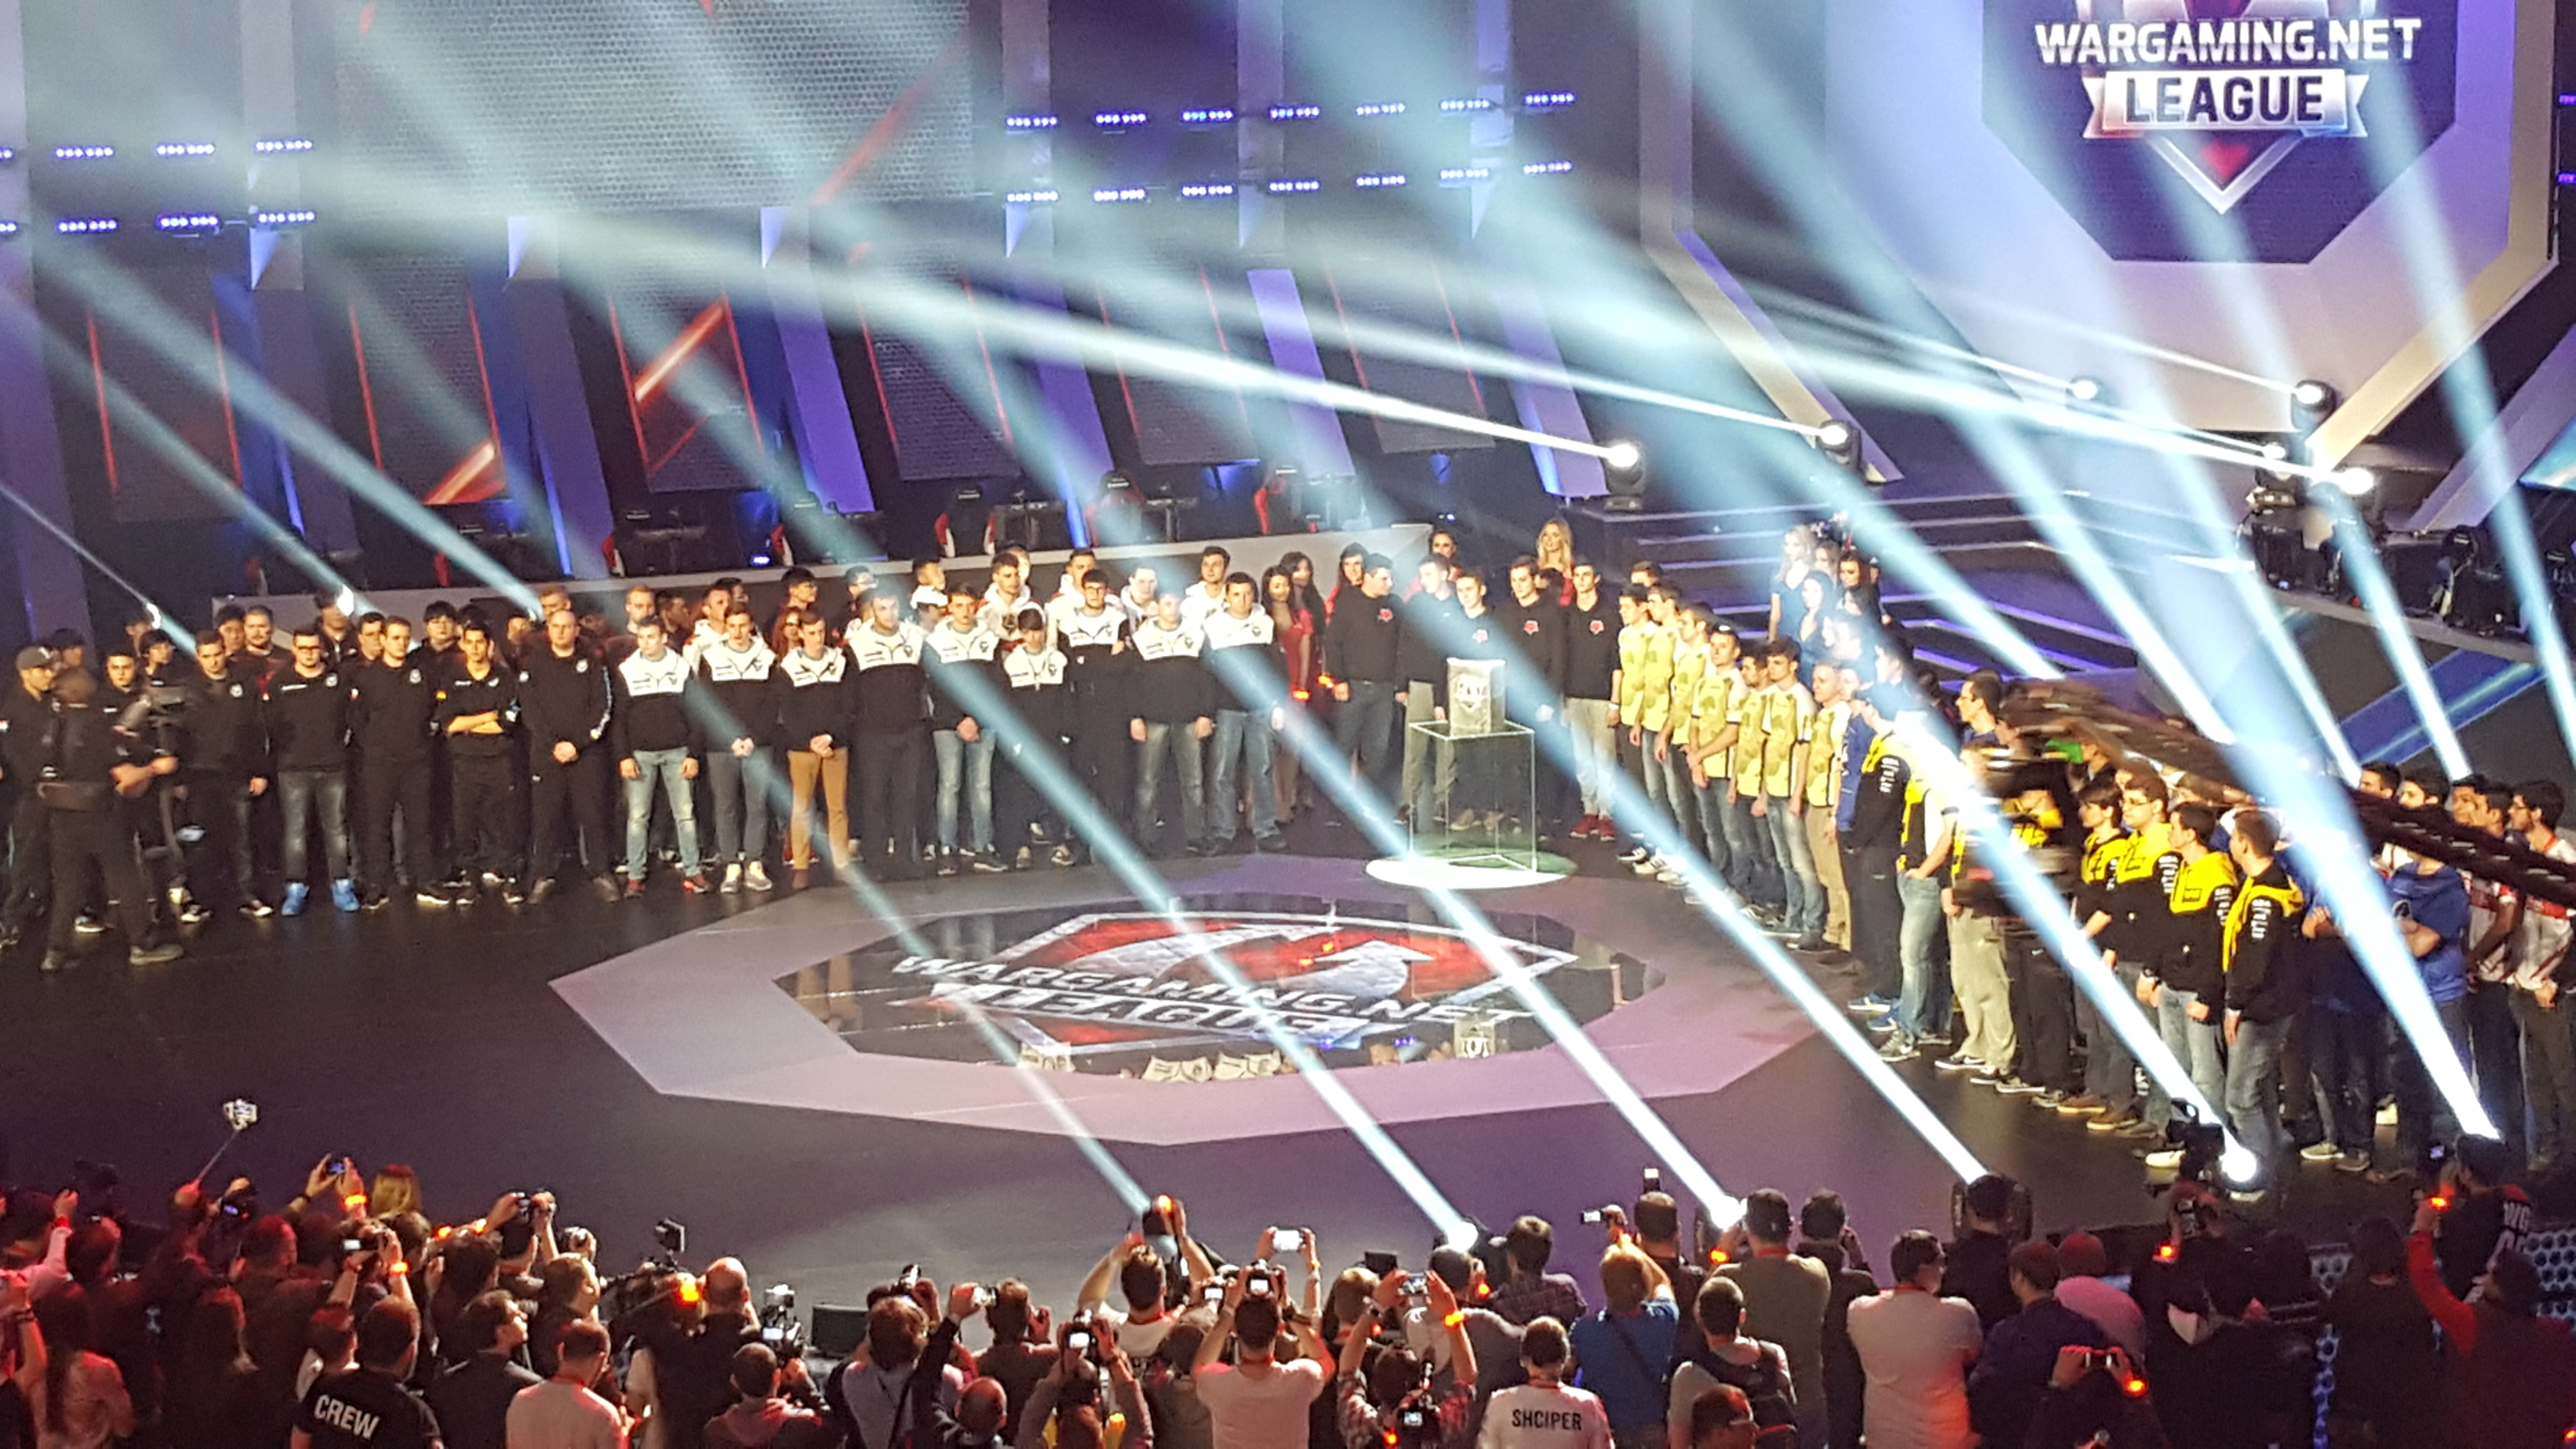 Wargaming celebrates the end of its third eSports season in Warsaw with the $300,000 World of Tanks Grand Finals 2016.